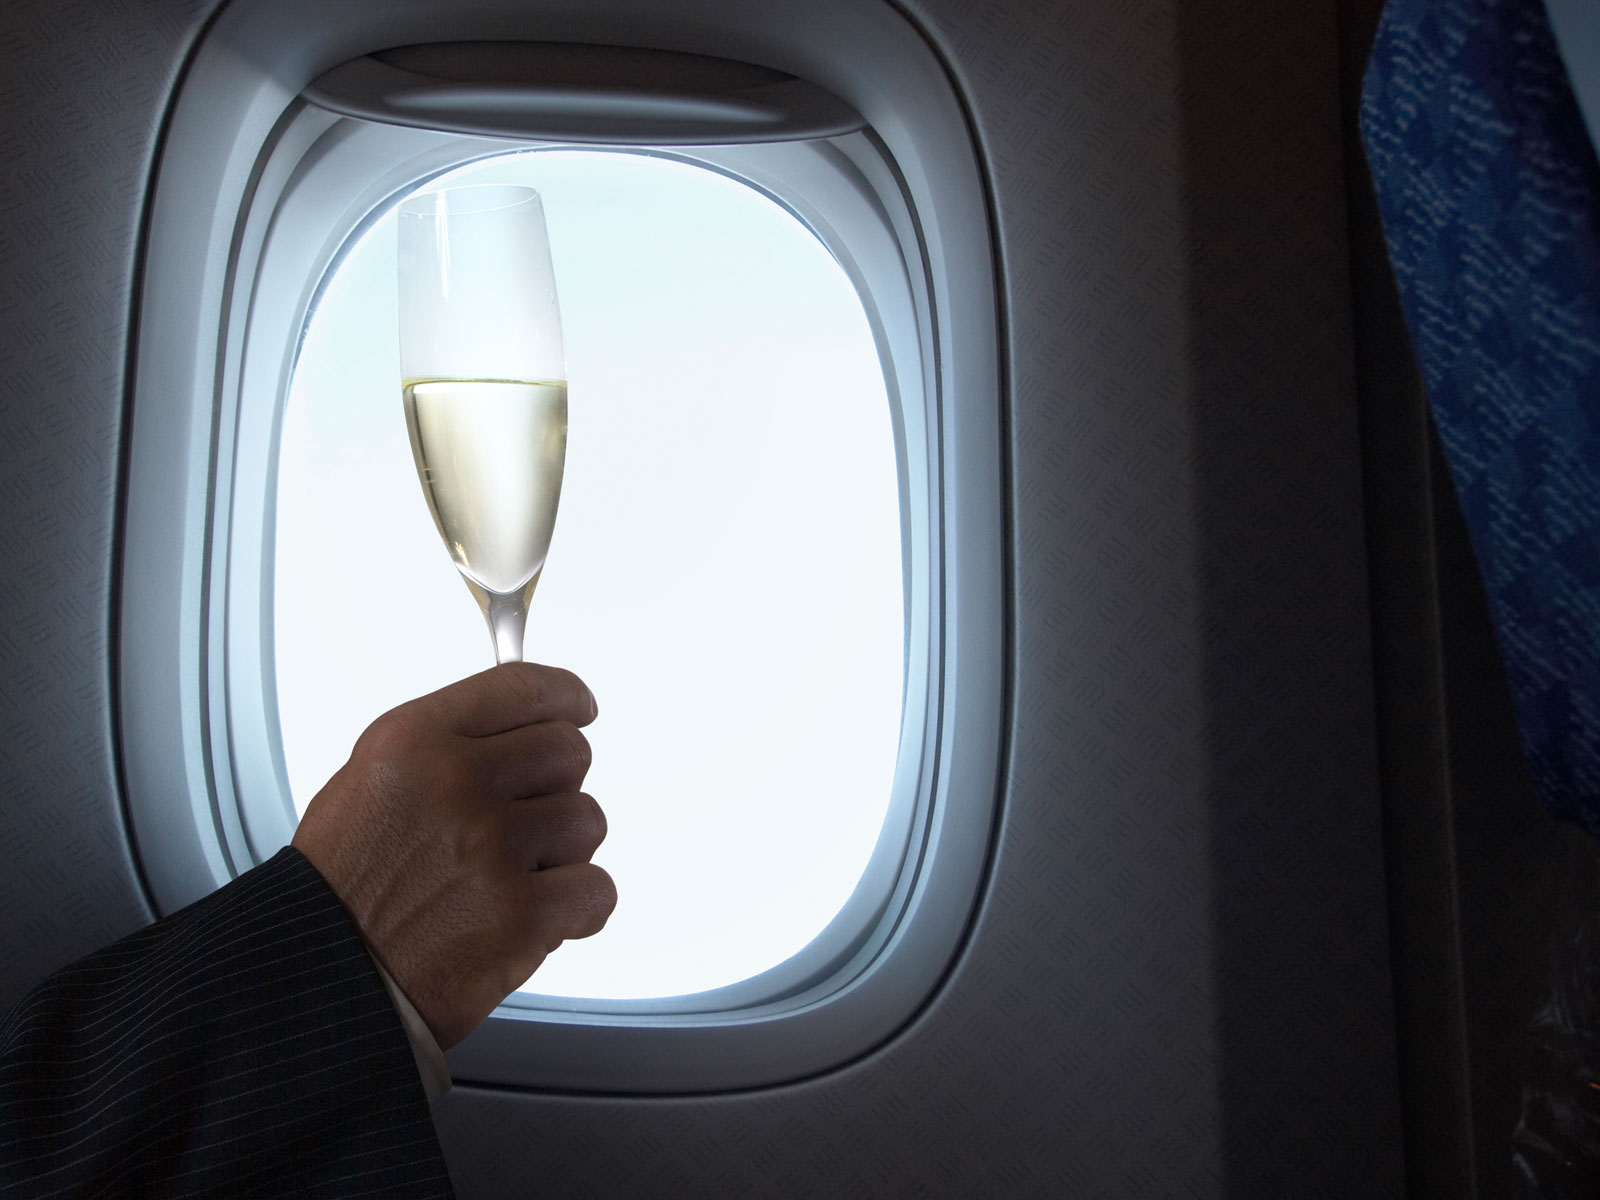 Airline Sommeliers